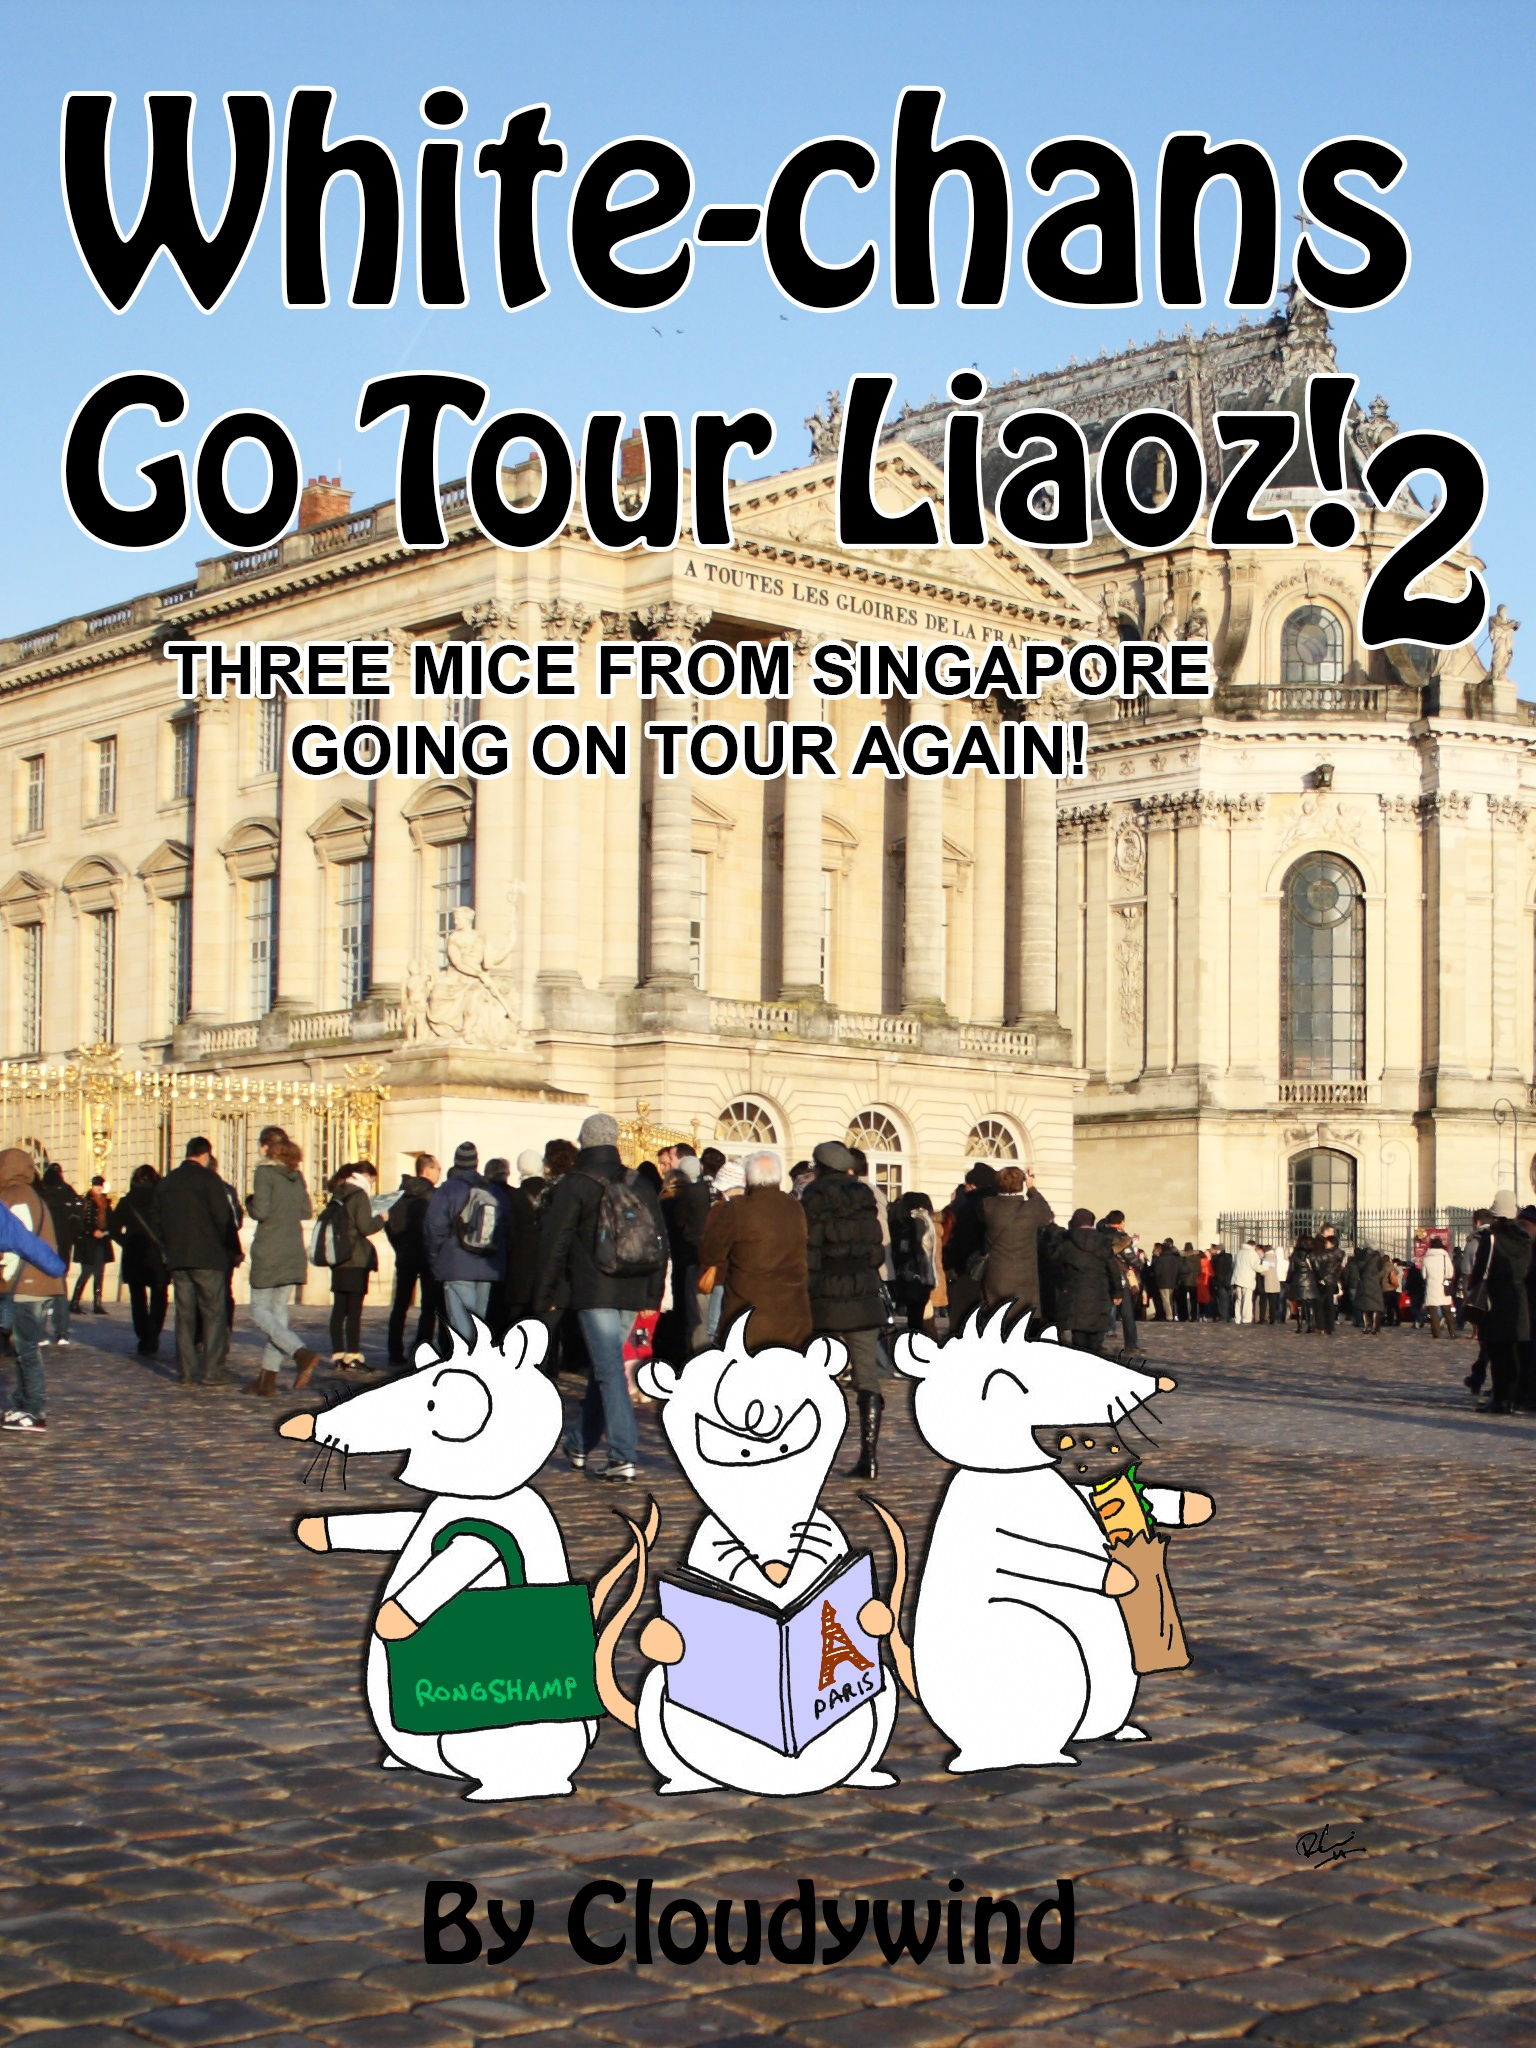 White-chans go tour liaoz! 2